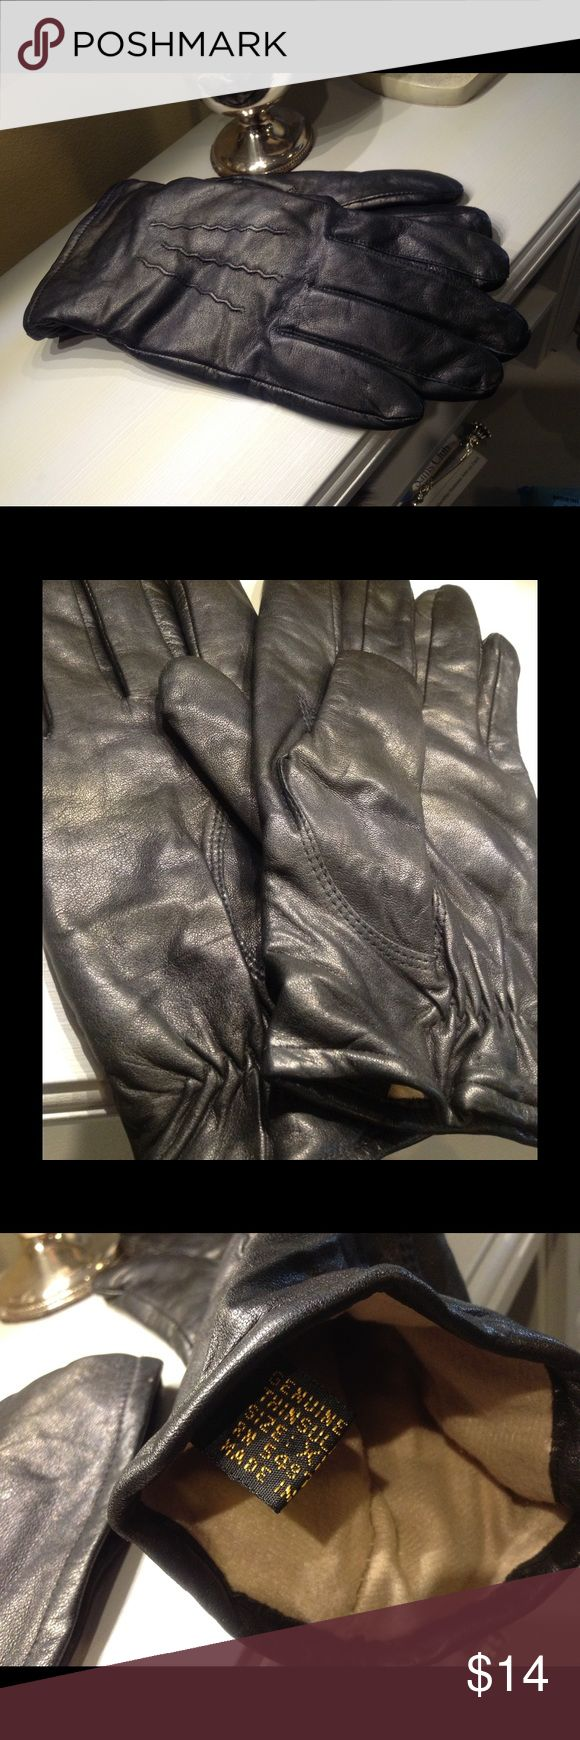 Womens leather gloves thinsulate lining - Thinsulate Black Leather Gloves Womens Size Xl